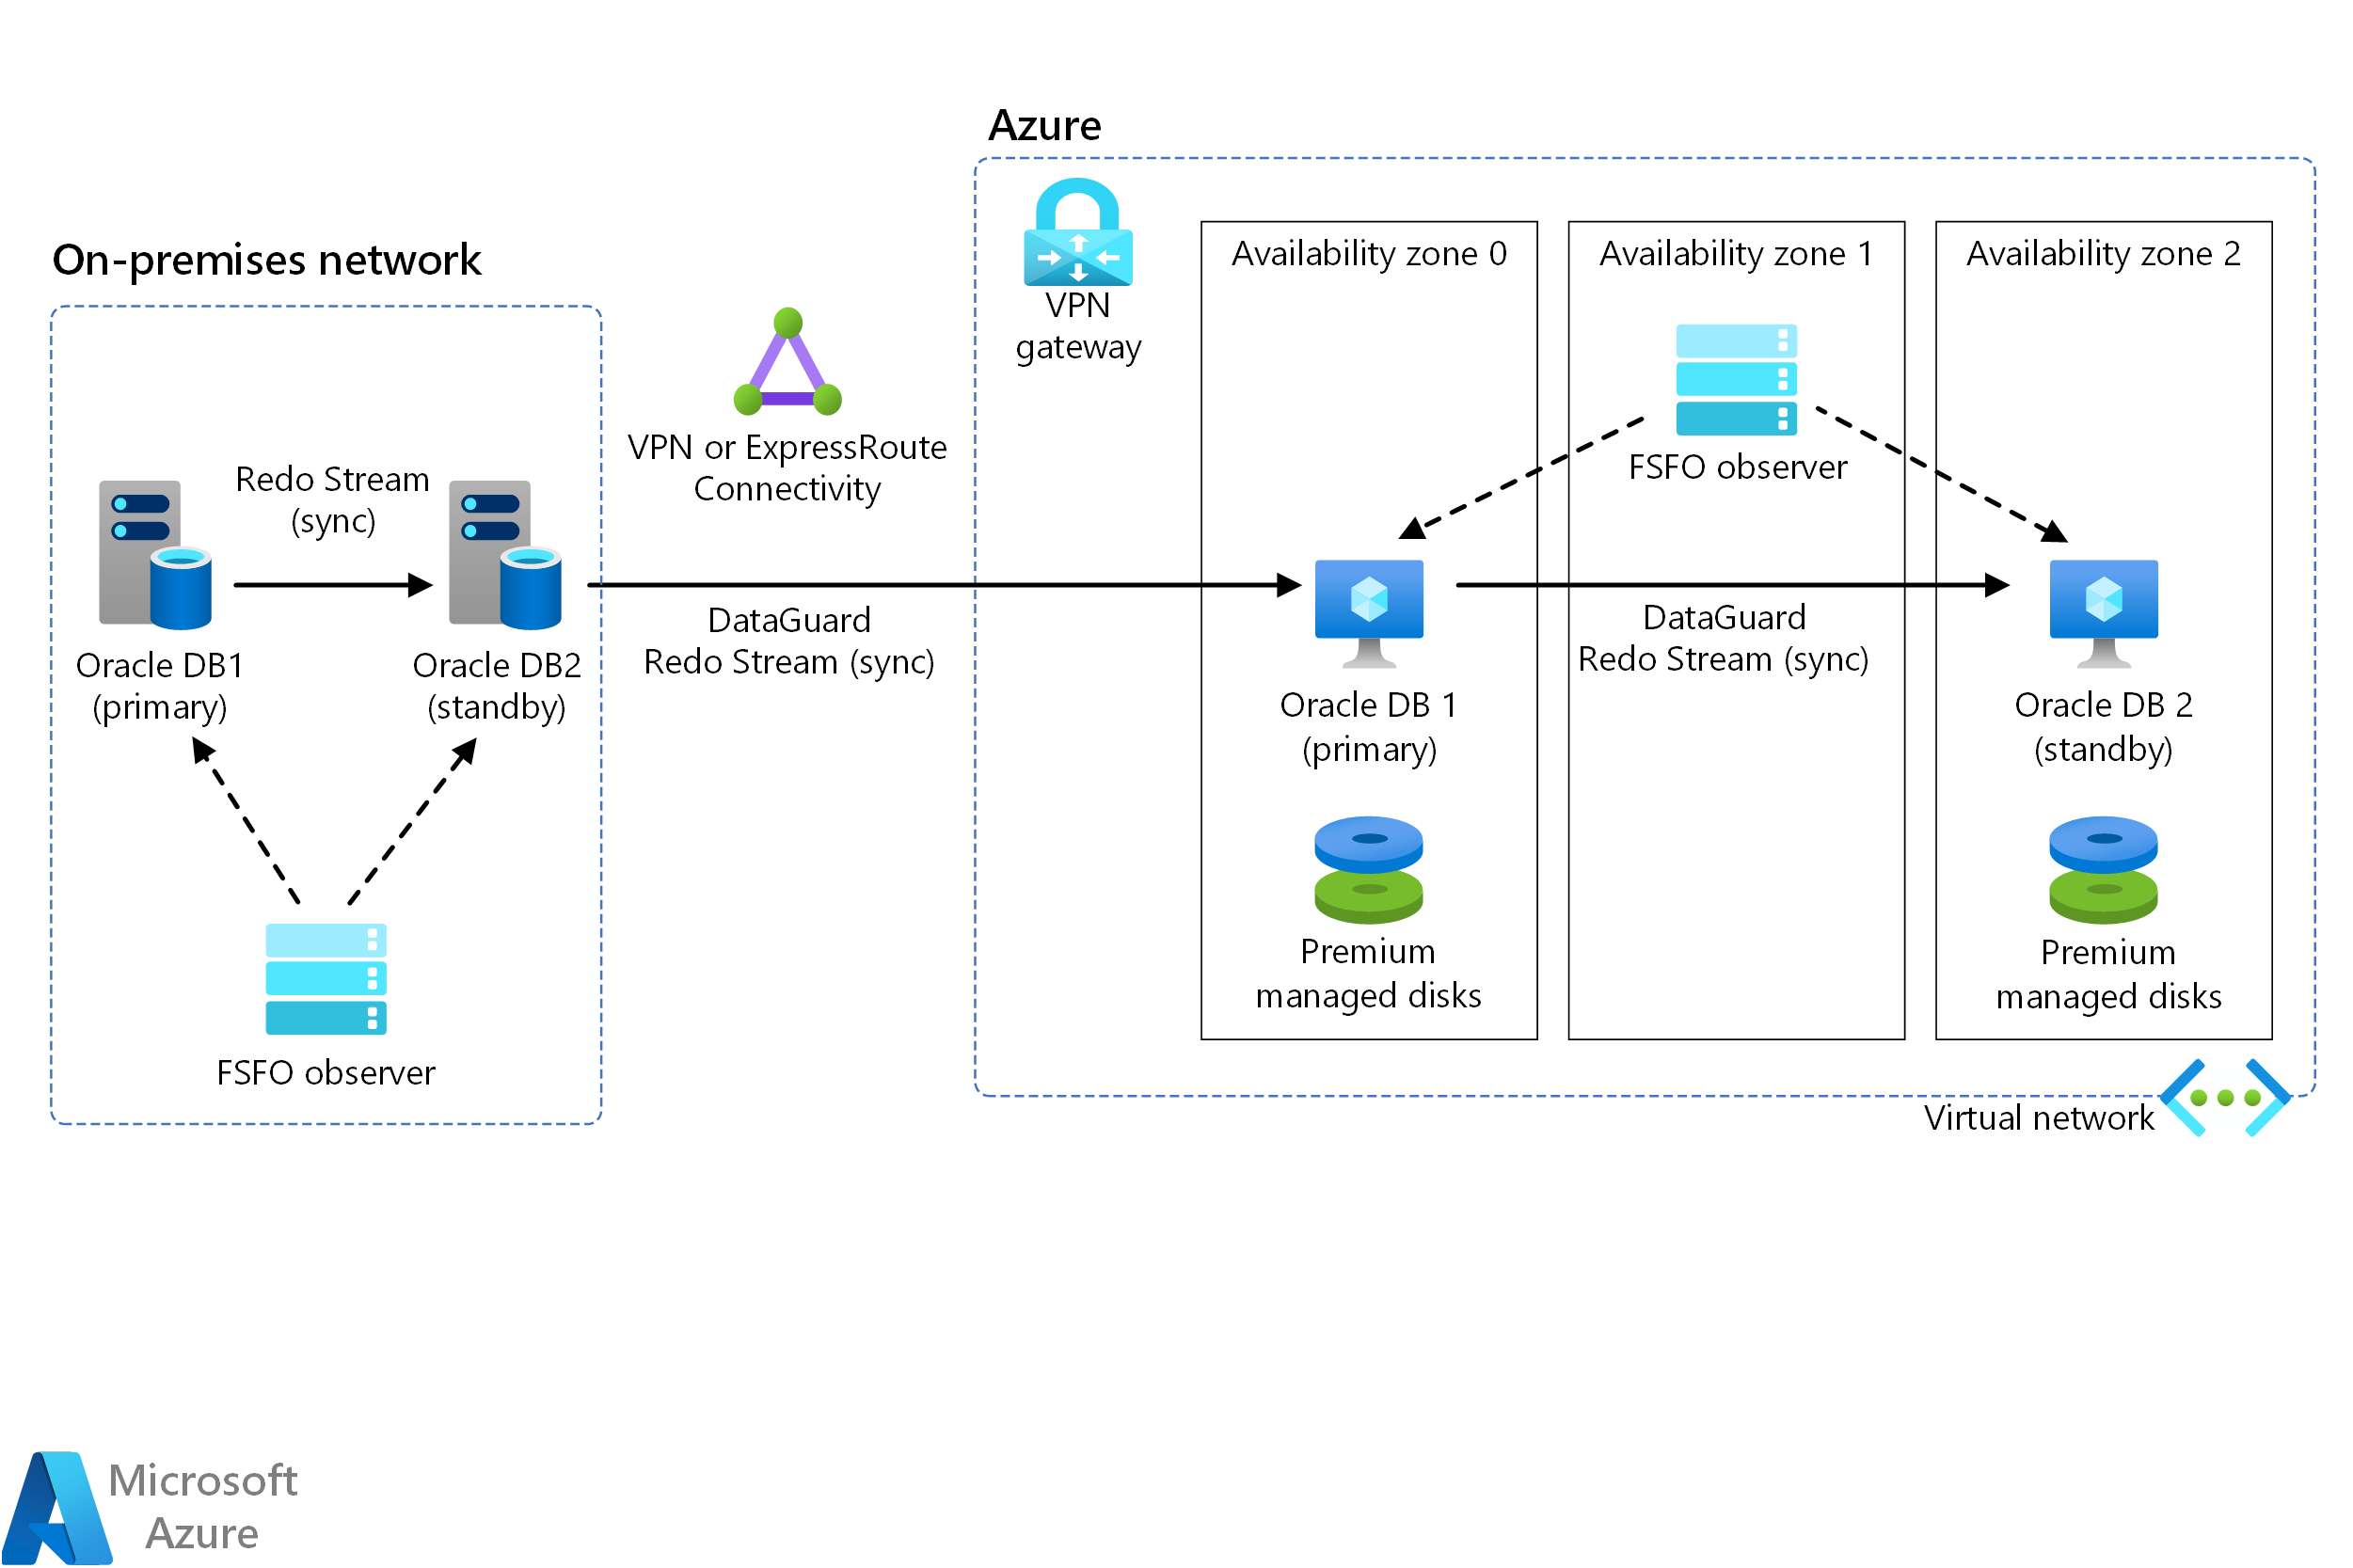 Thumbnail of Oracle Database Migration to Azure Architectural Diagram.